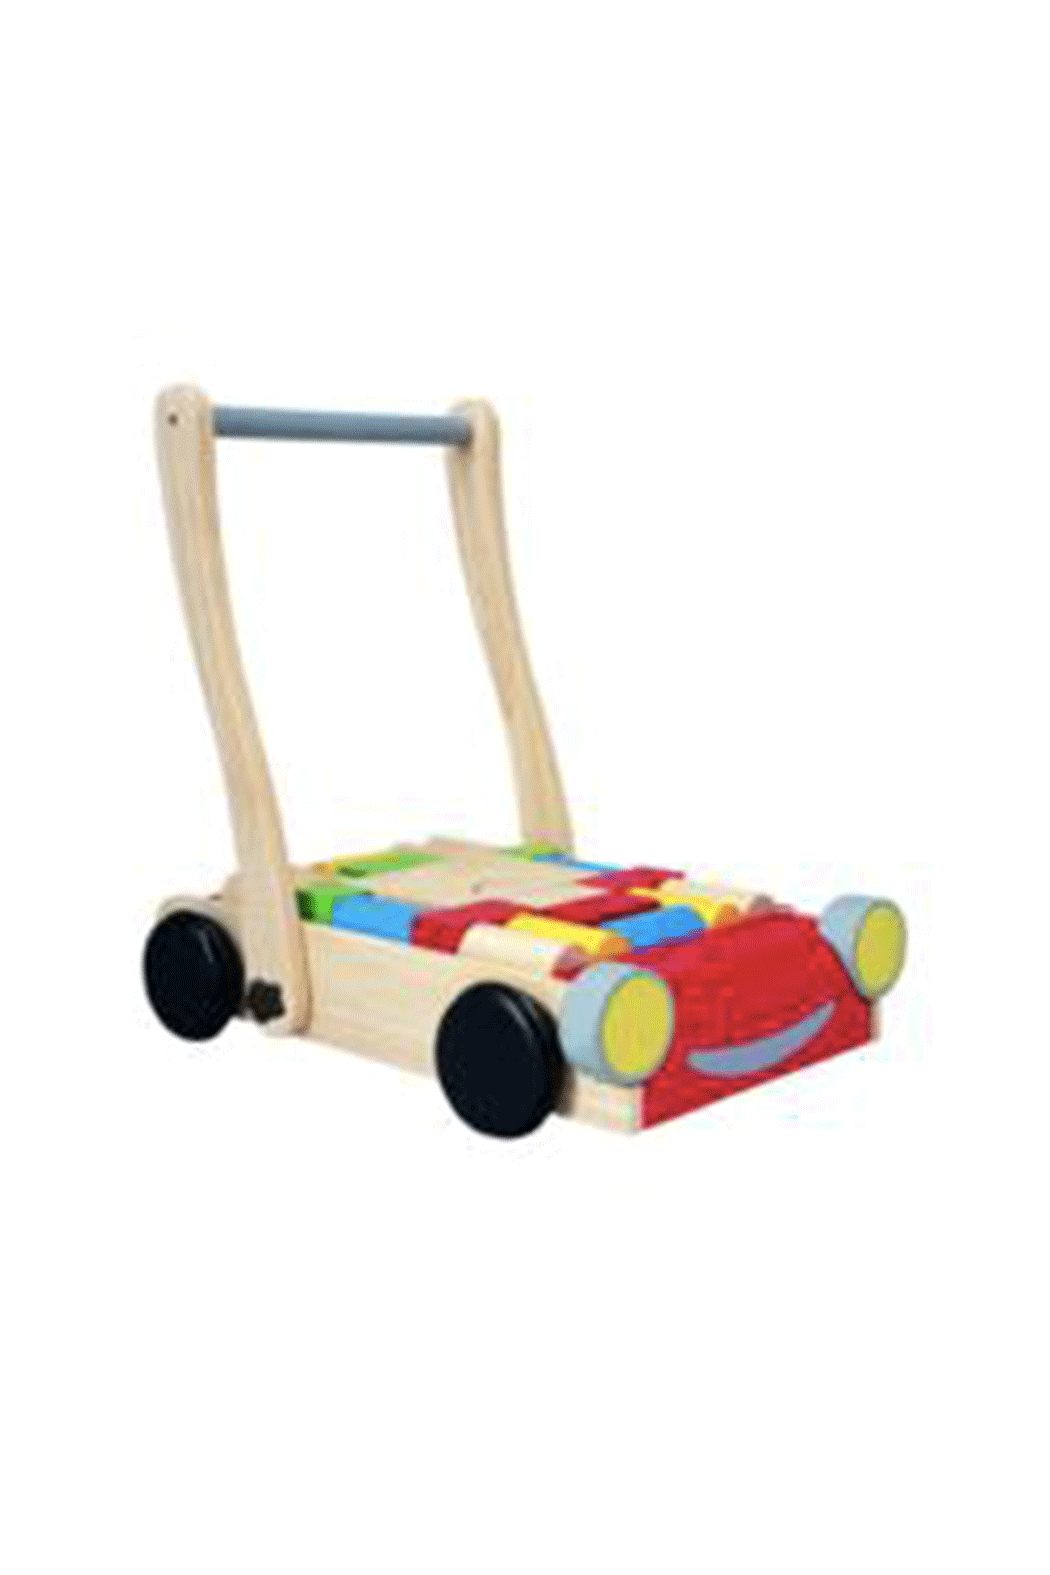 Plan Toys Plan Baby Walker - Main Image